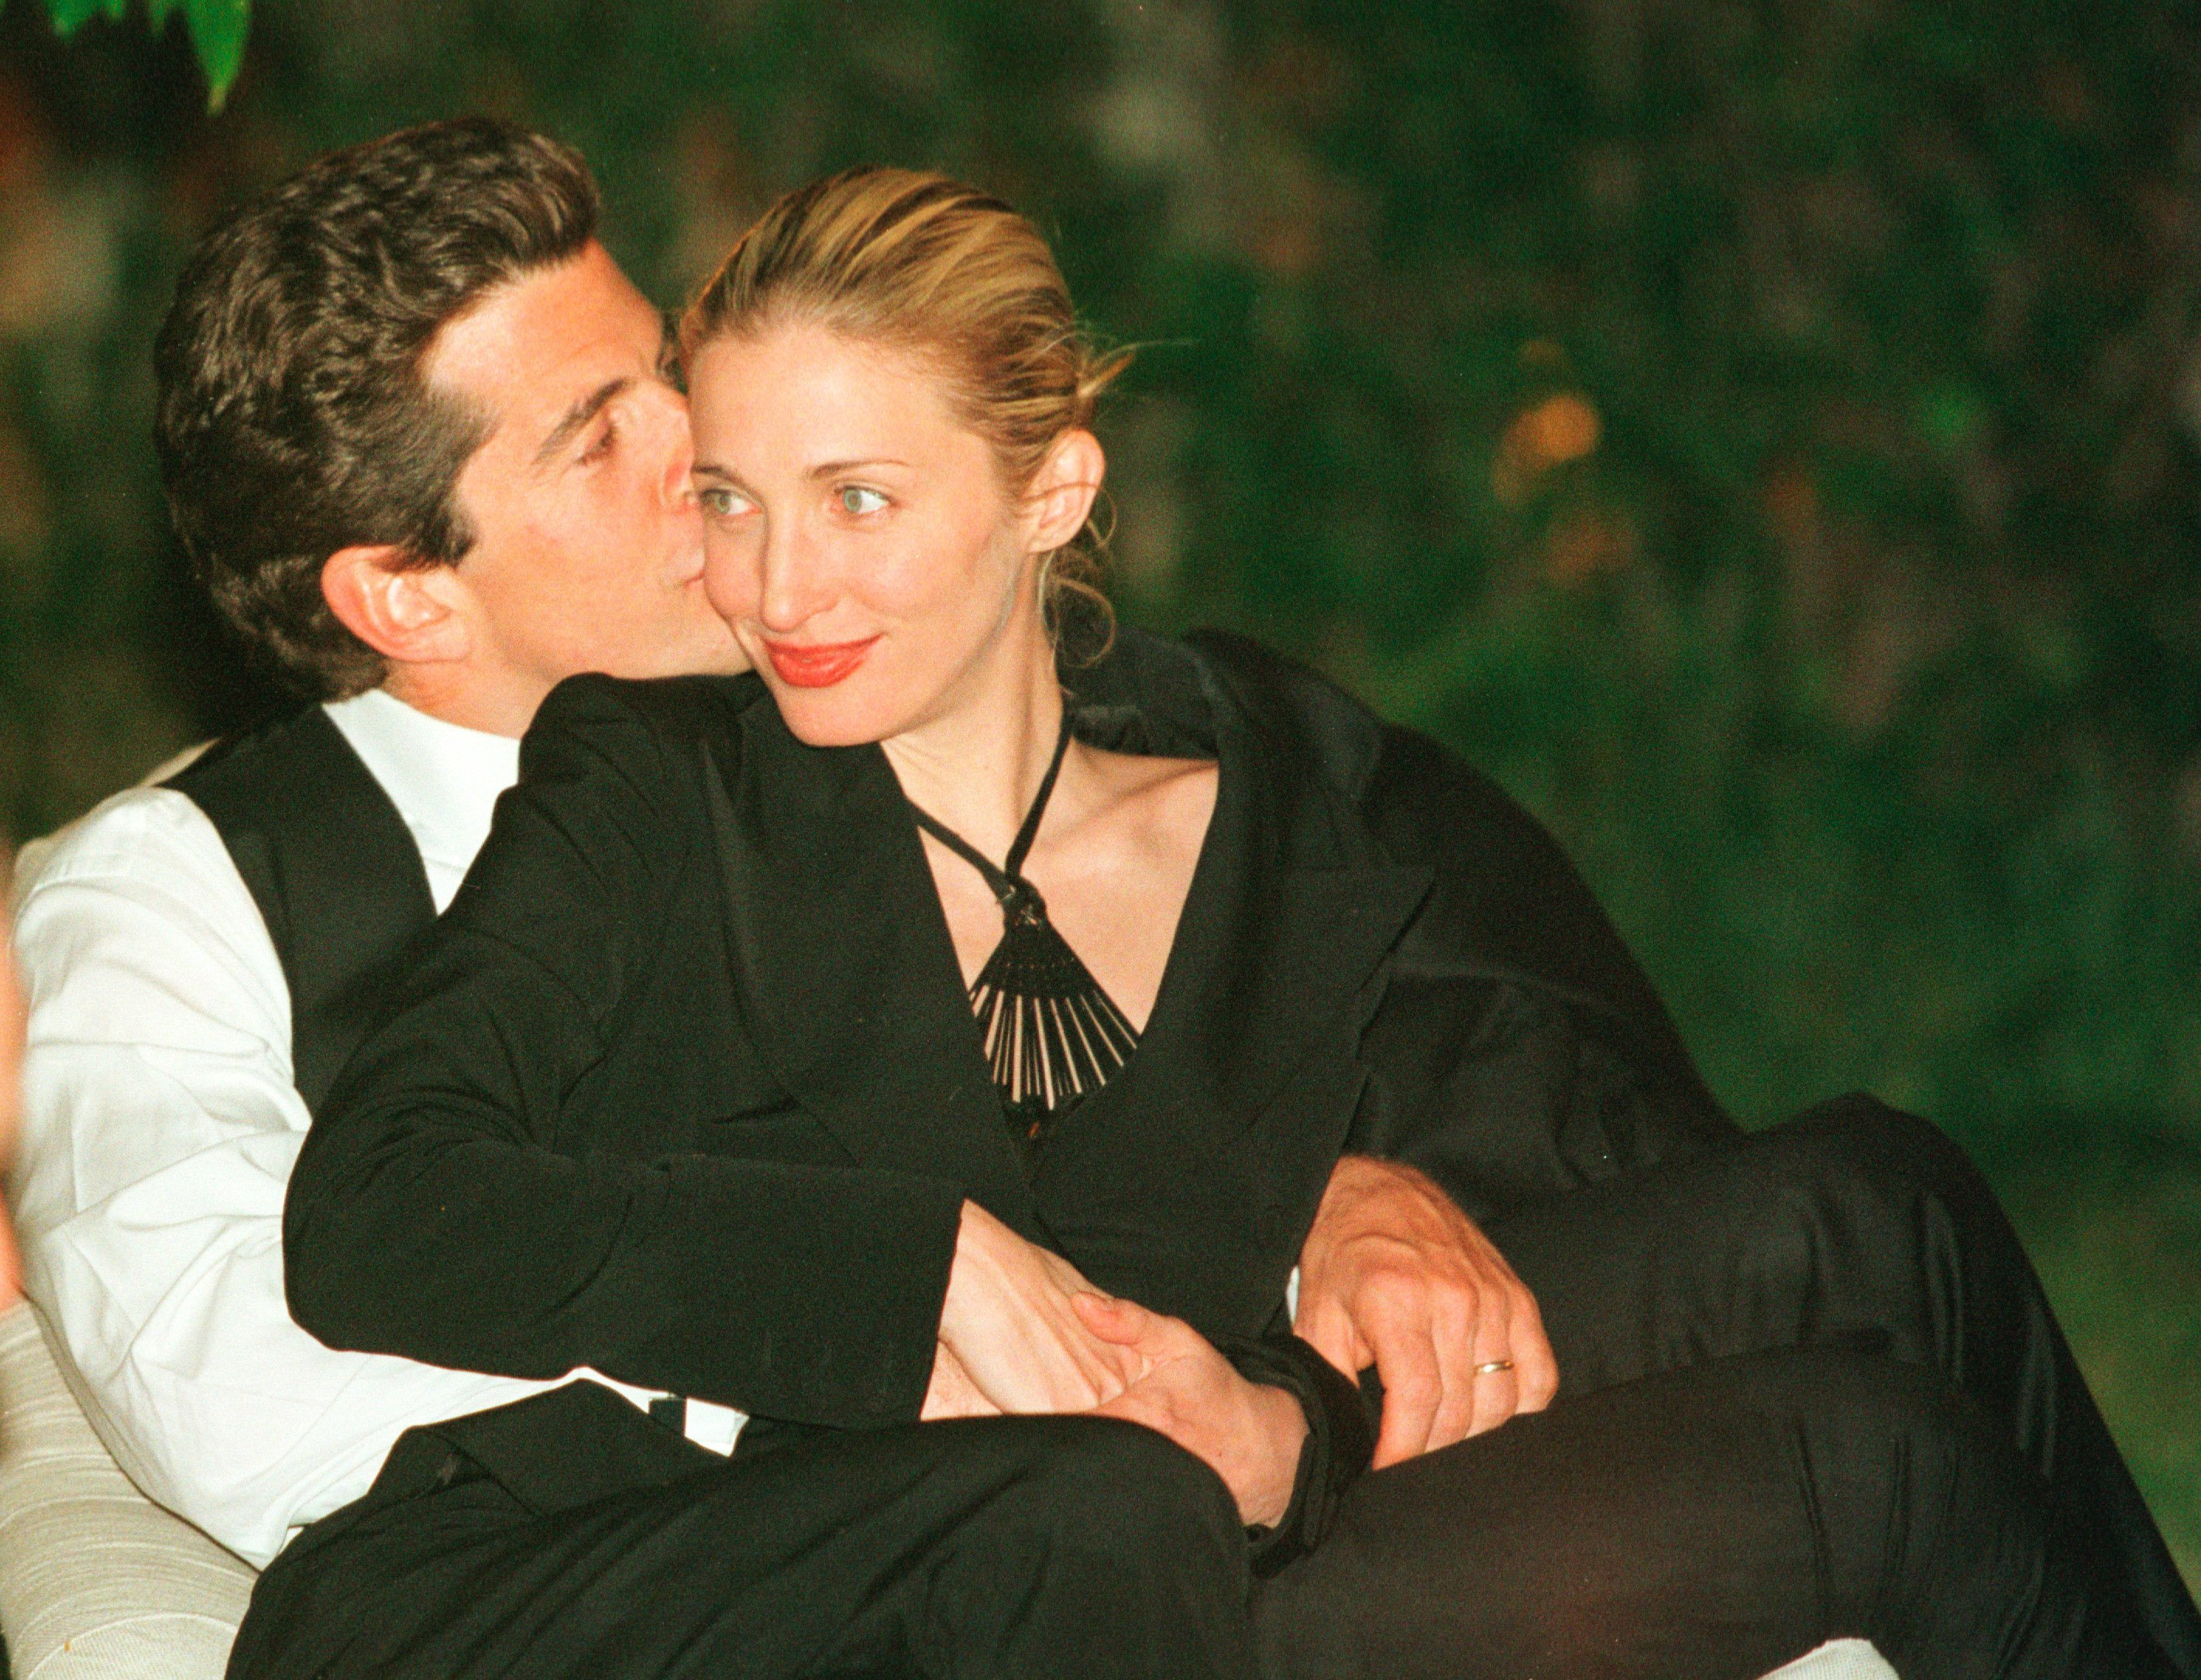 John F. Kennedy, Jr. and his wife Carolyn attend the annual White House Correspondents dinner May 1, 1999, in Washington, D.C. | Source: Getty Images.